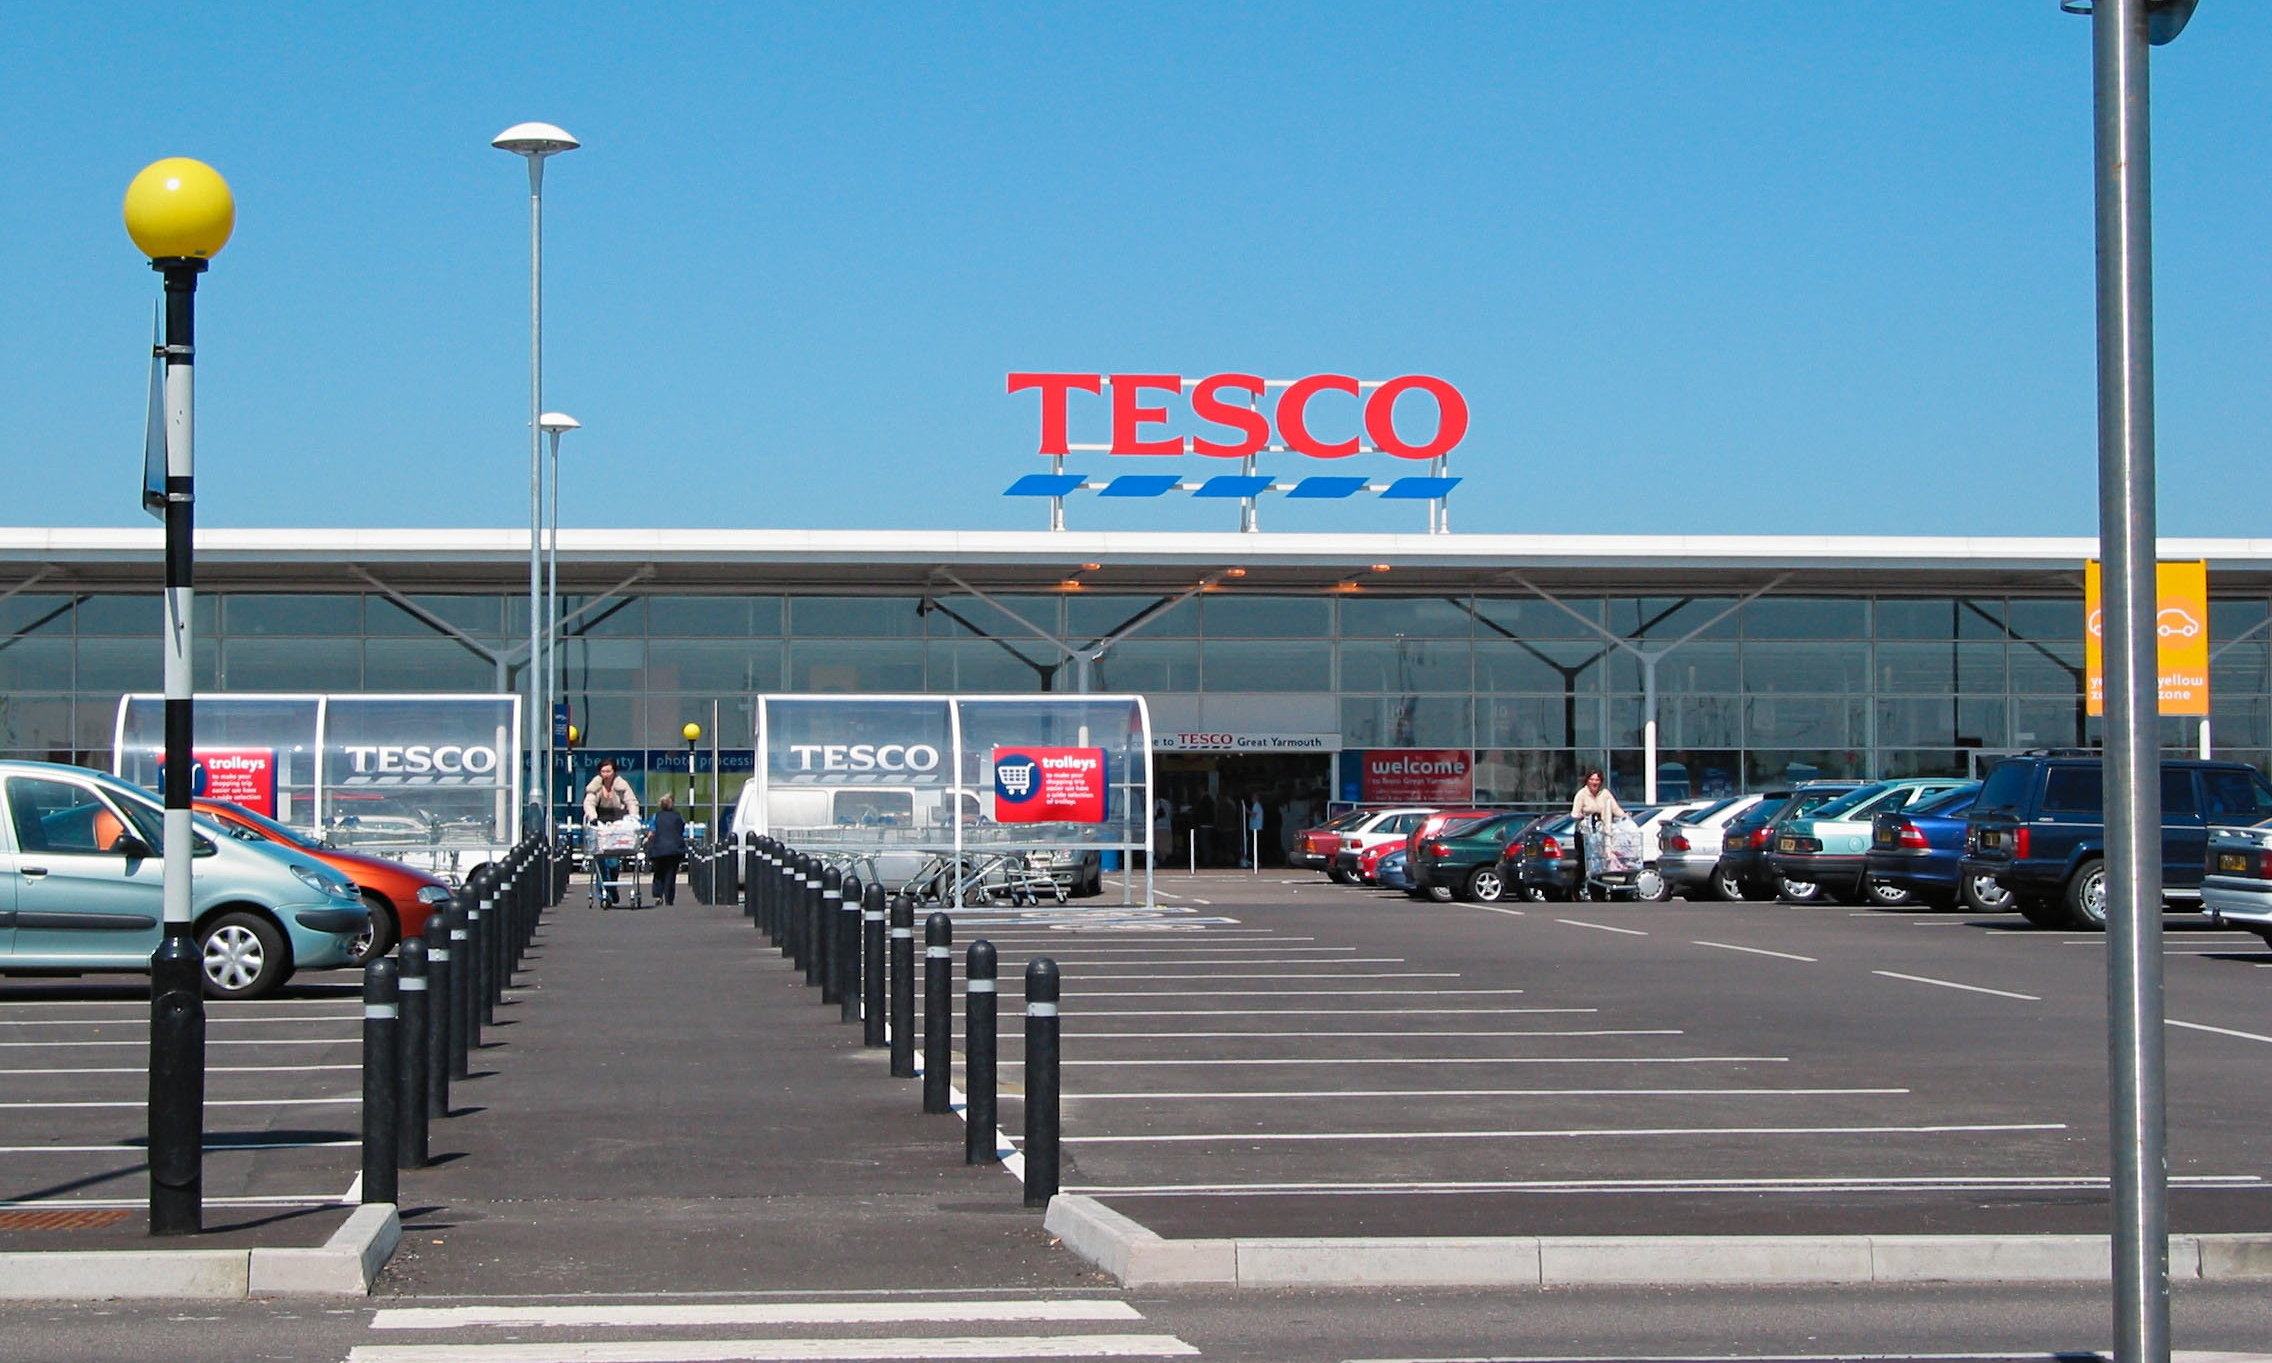 strategic analysis of tesco for uk and us markets Enhanced imitation in tesco's us market entry michelle  keywords: capability  development, retail, strategy  the uk's largest retailer as it entered western us  markets  analysis of tesco's market entry into us markets.